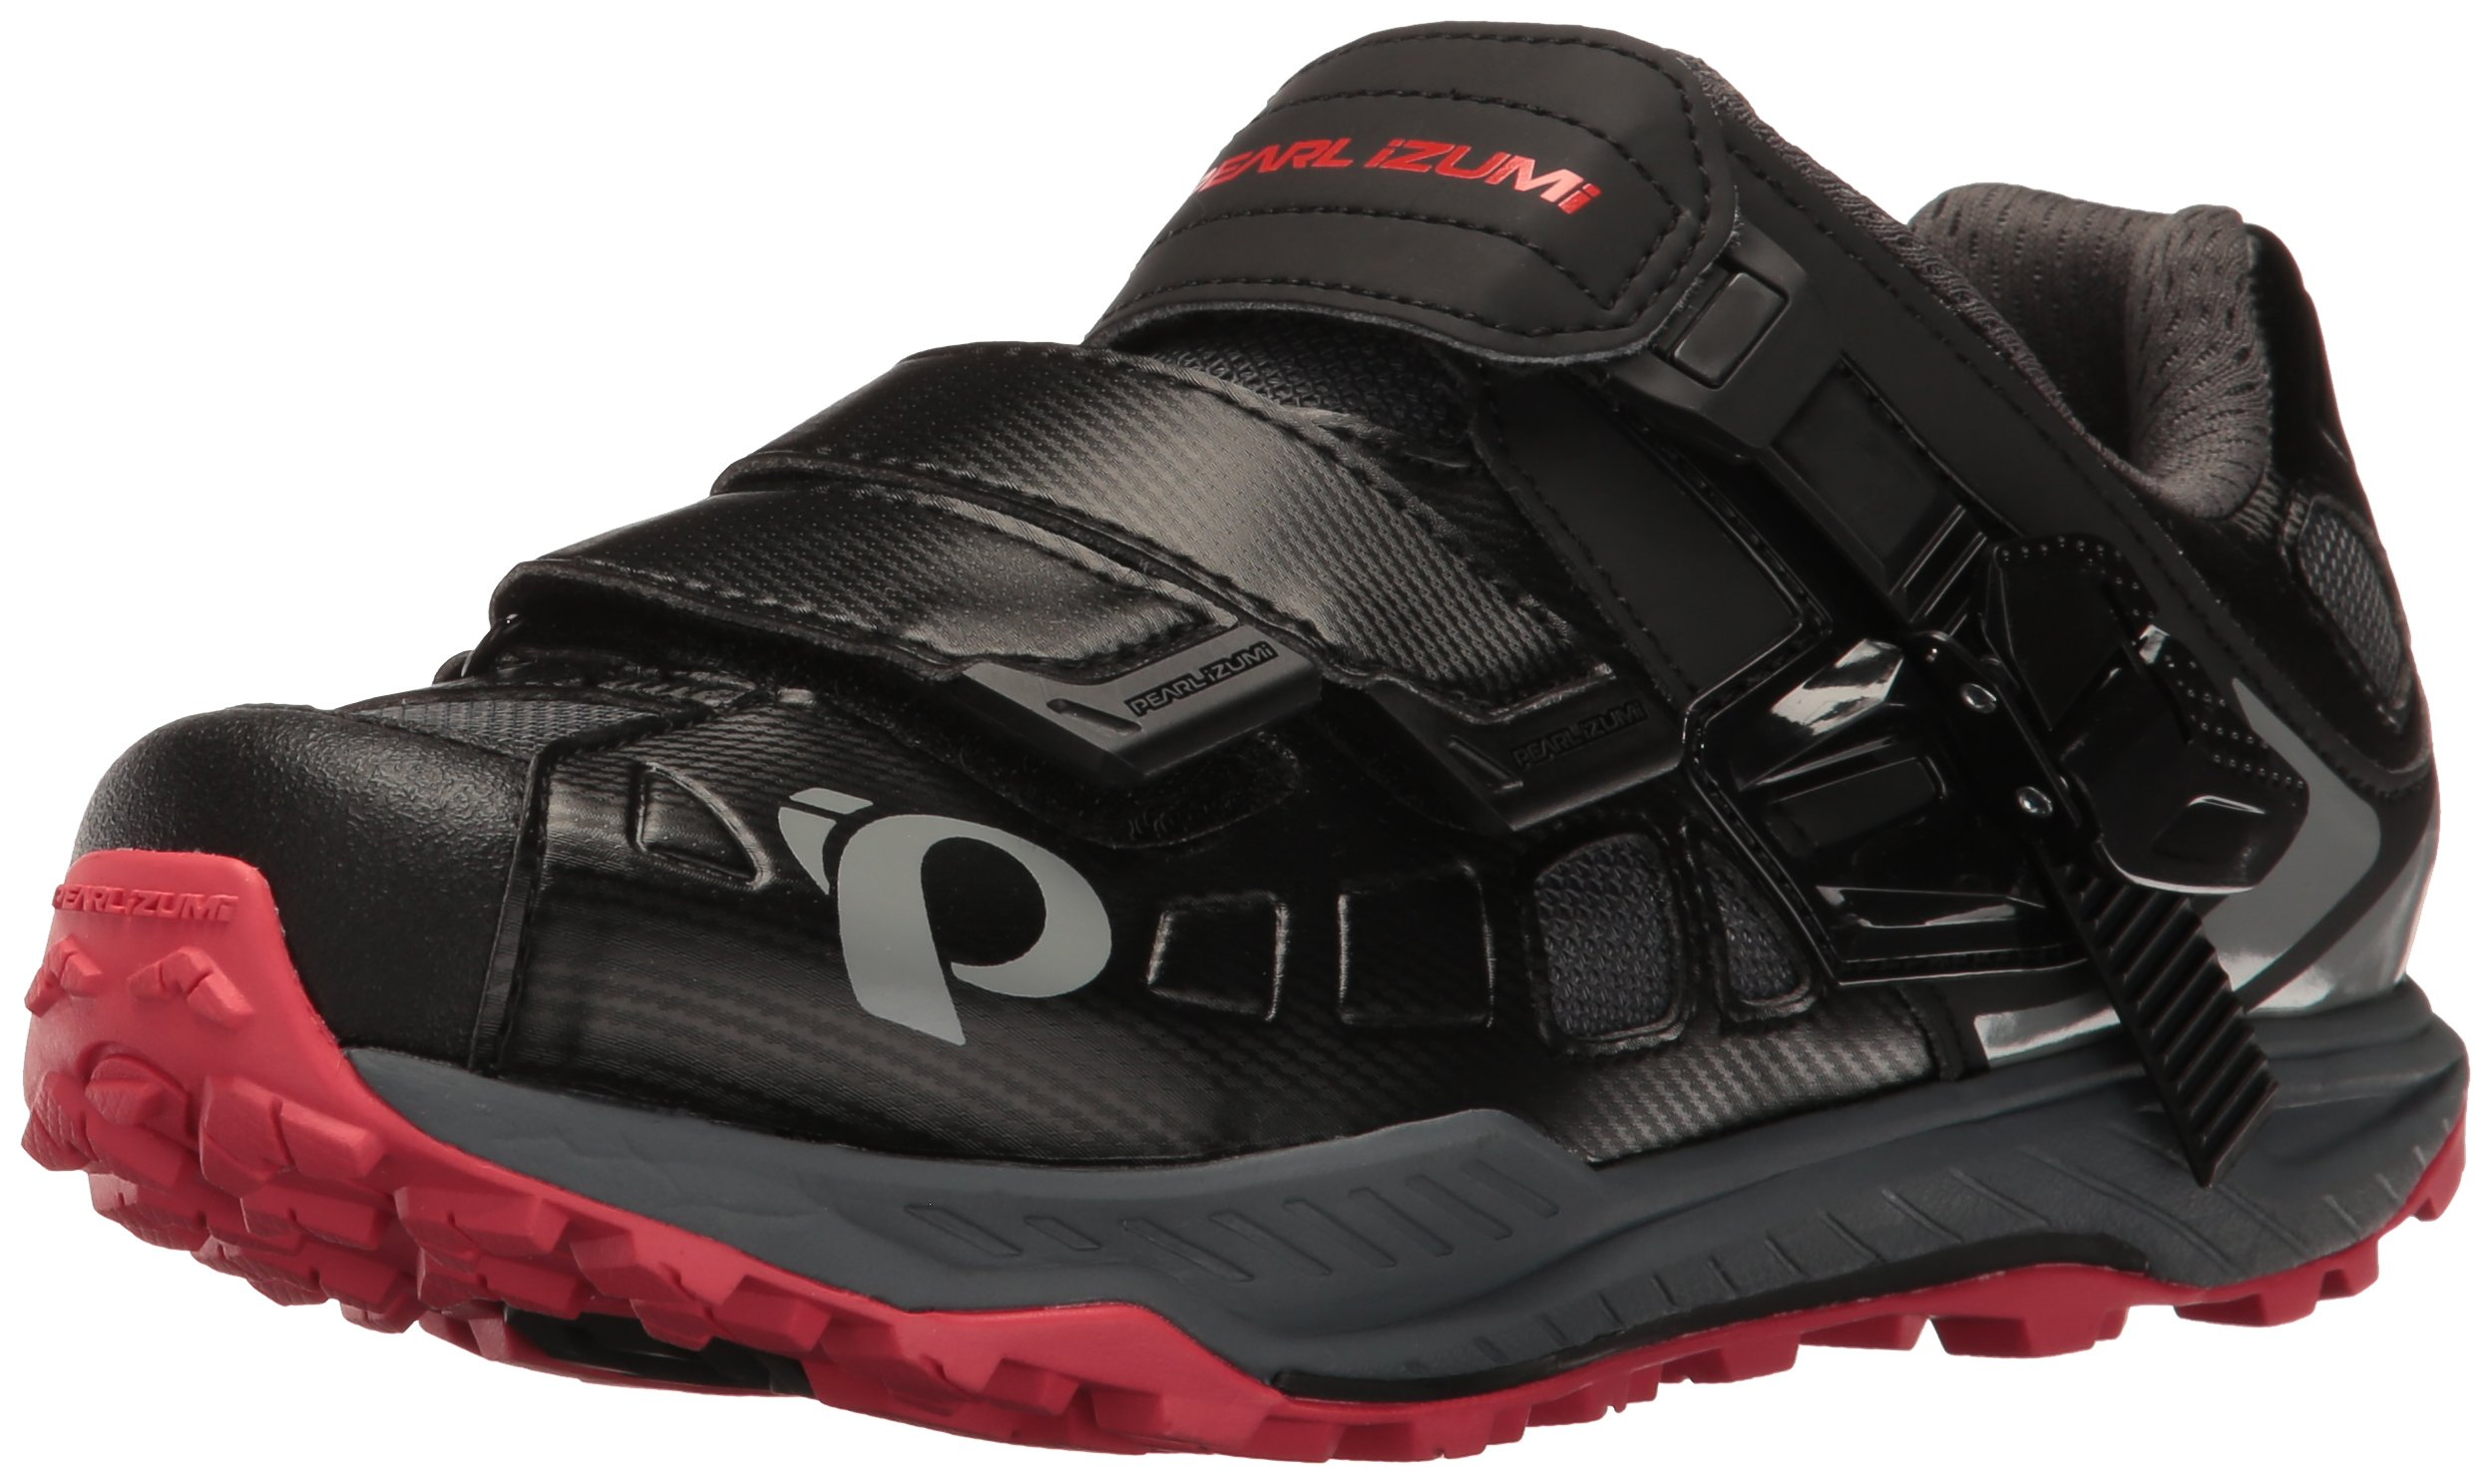 Pearl iZUMi Women's W X-Alp Enduro V5 Cycling Shoe, Black/Shadow Grey, 40 EU/8.4 B US